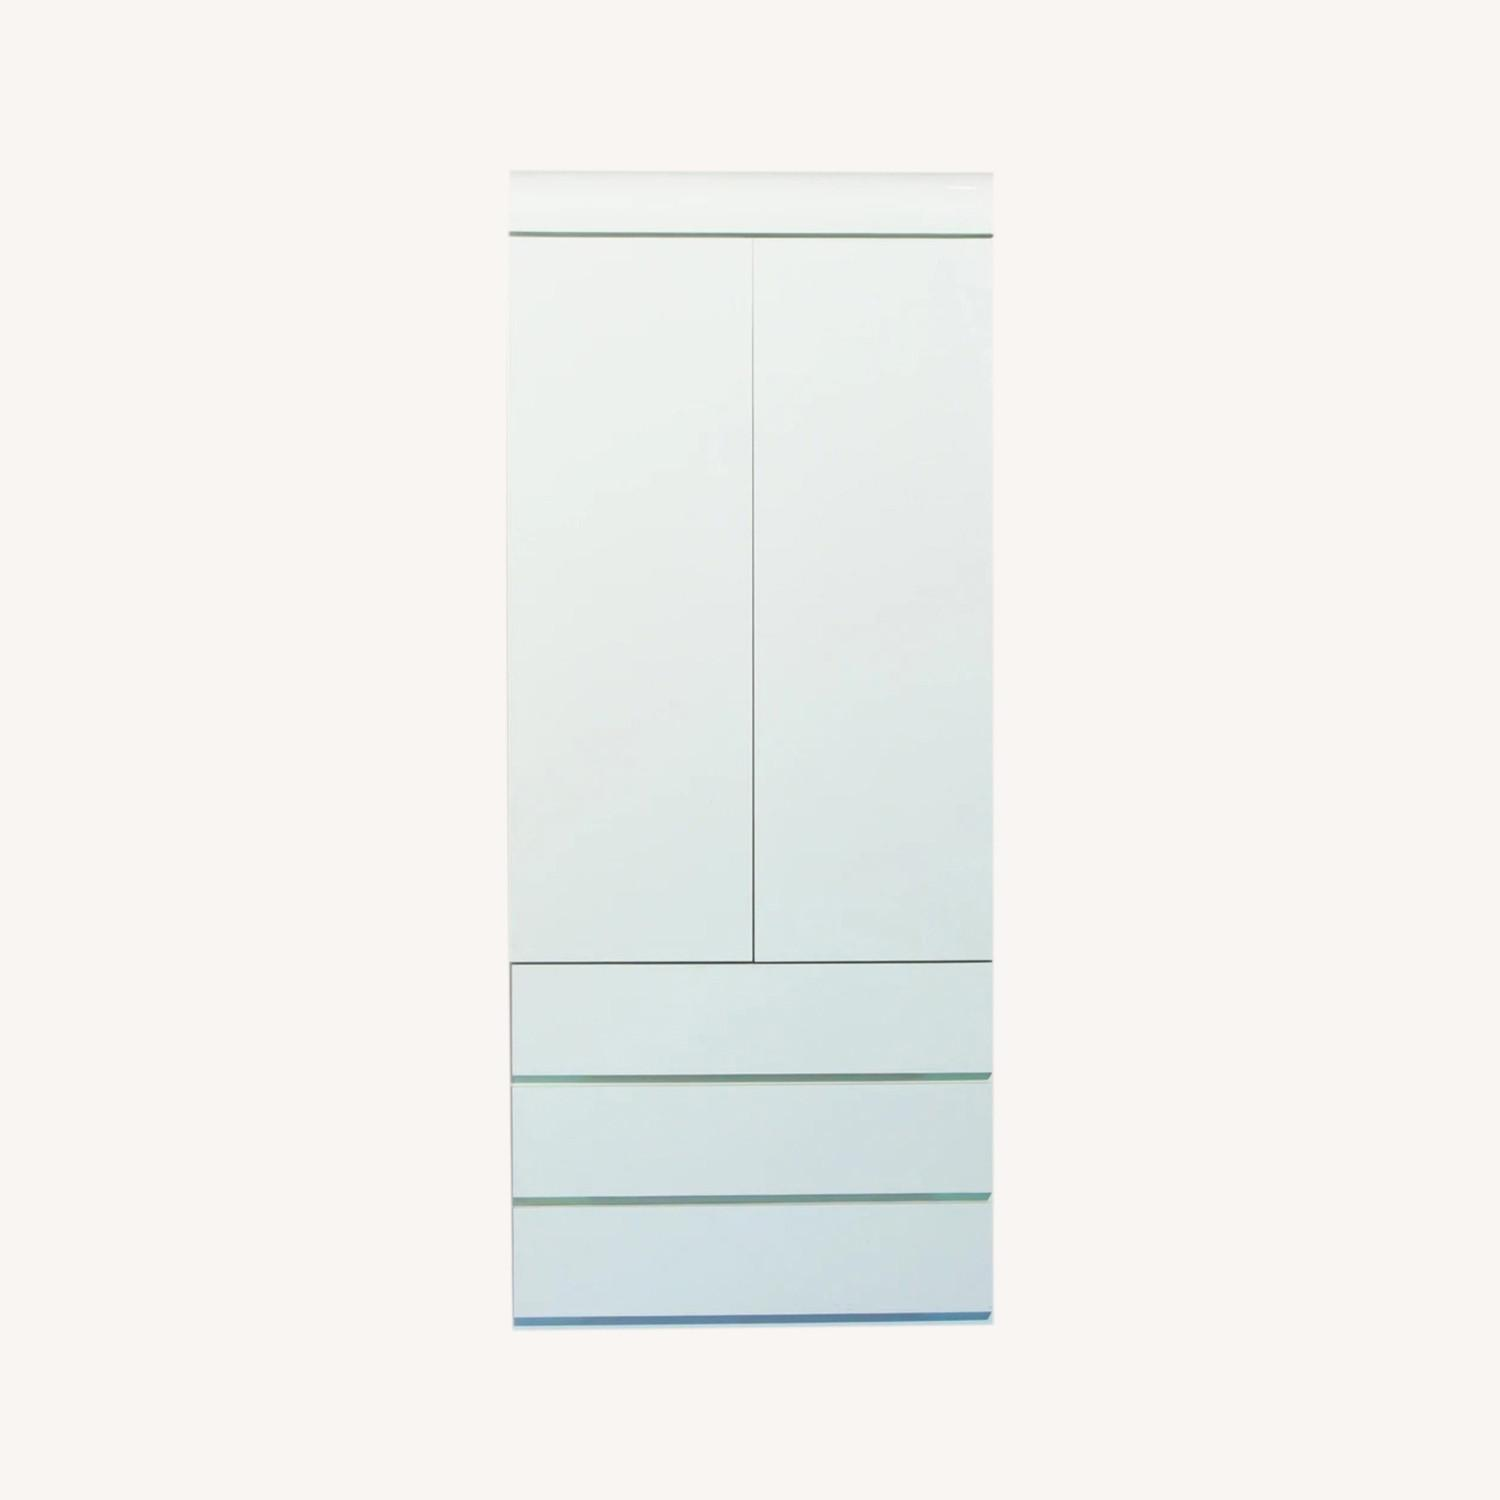 1980s Glossy Mint Laminate Armoire - image-0